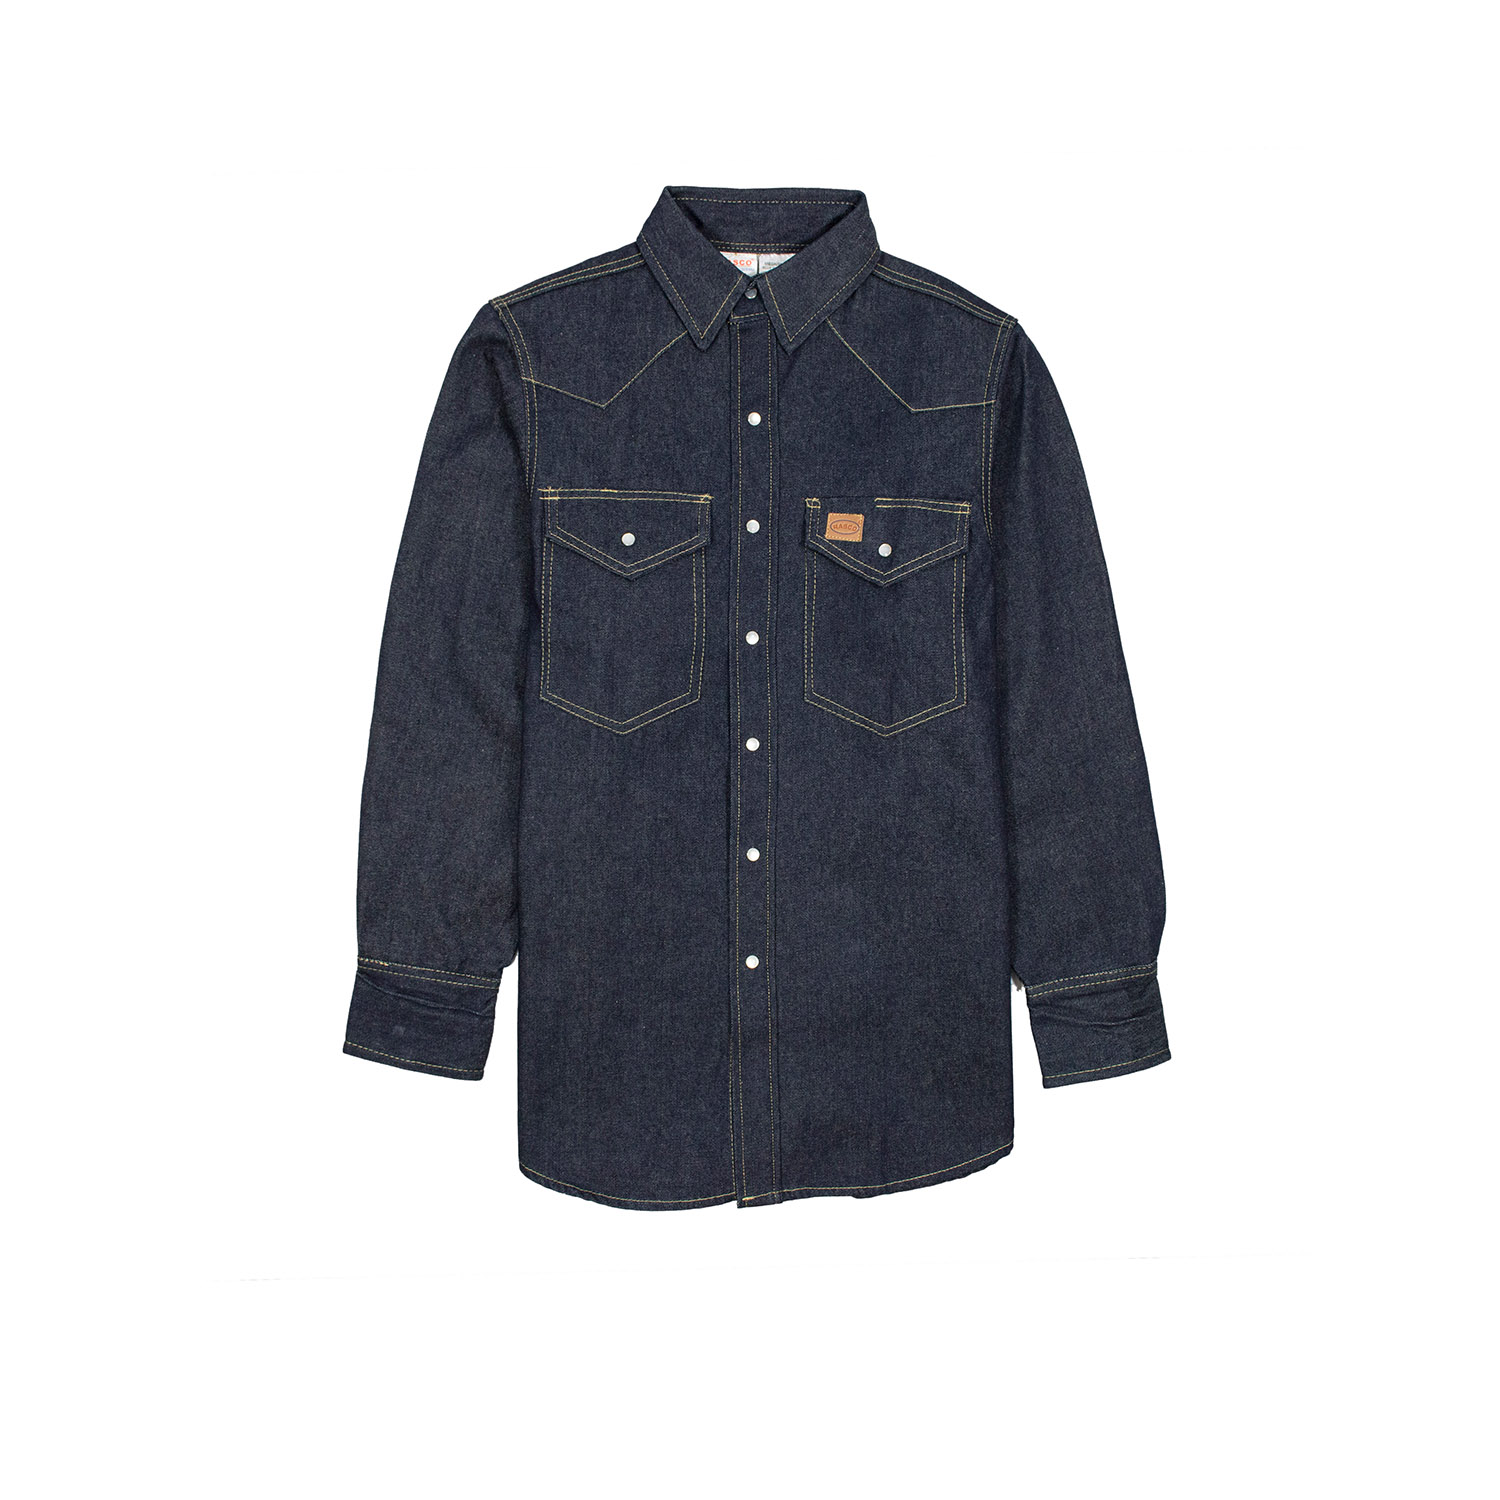 11.5 Oz. Blue Denim Shirt